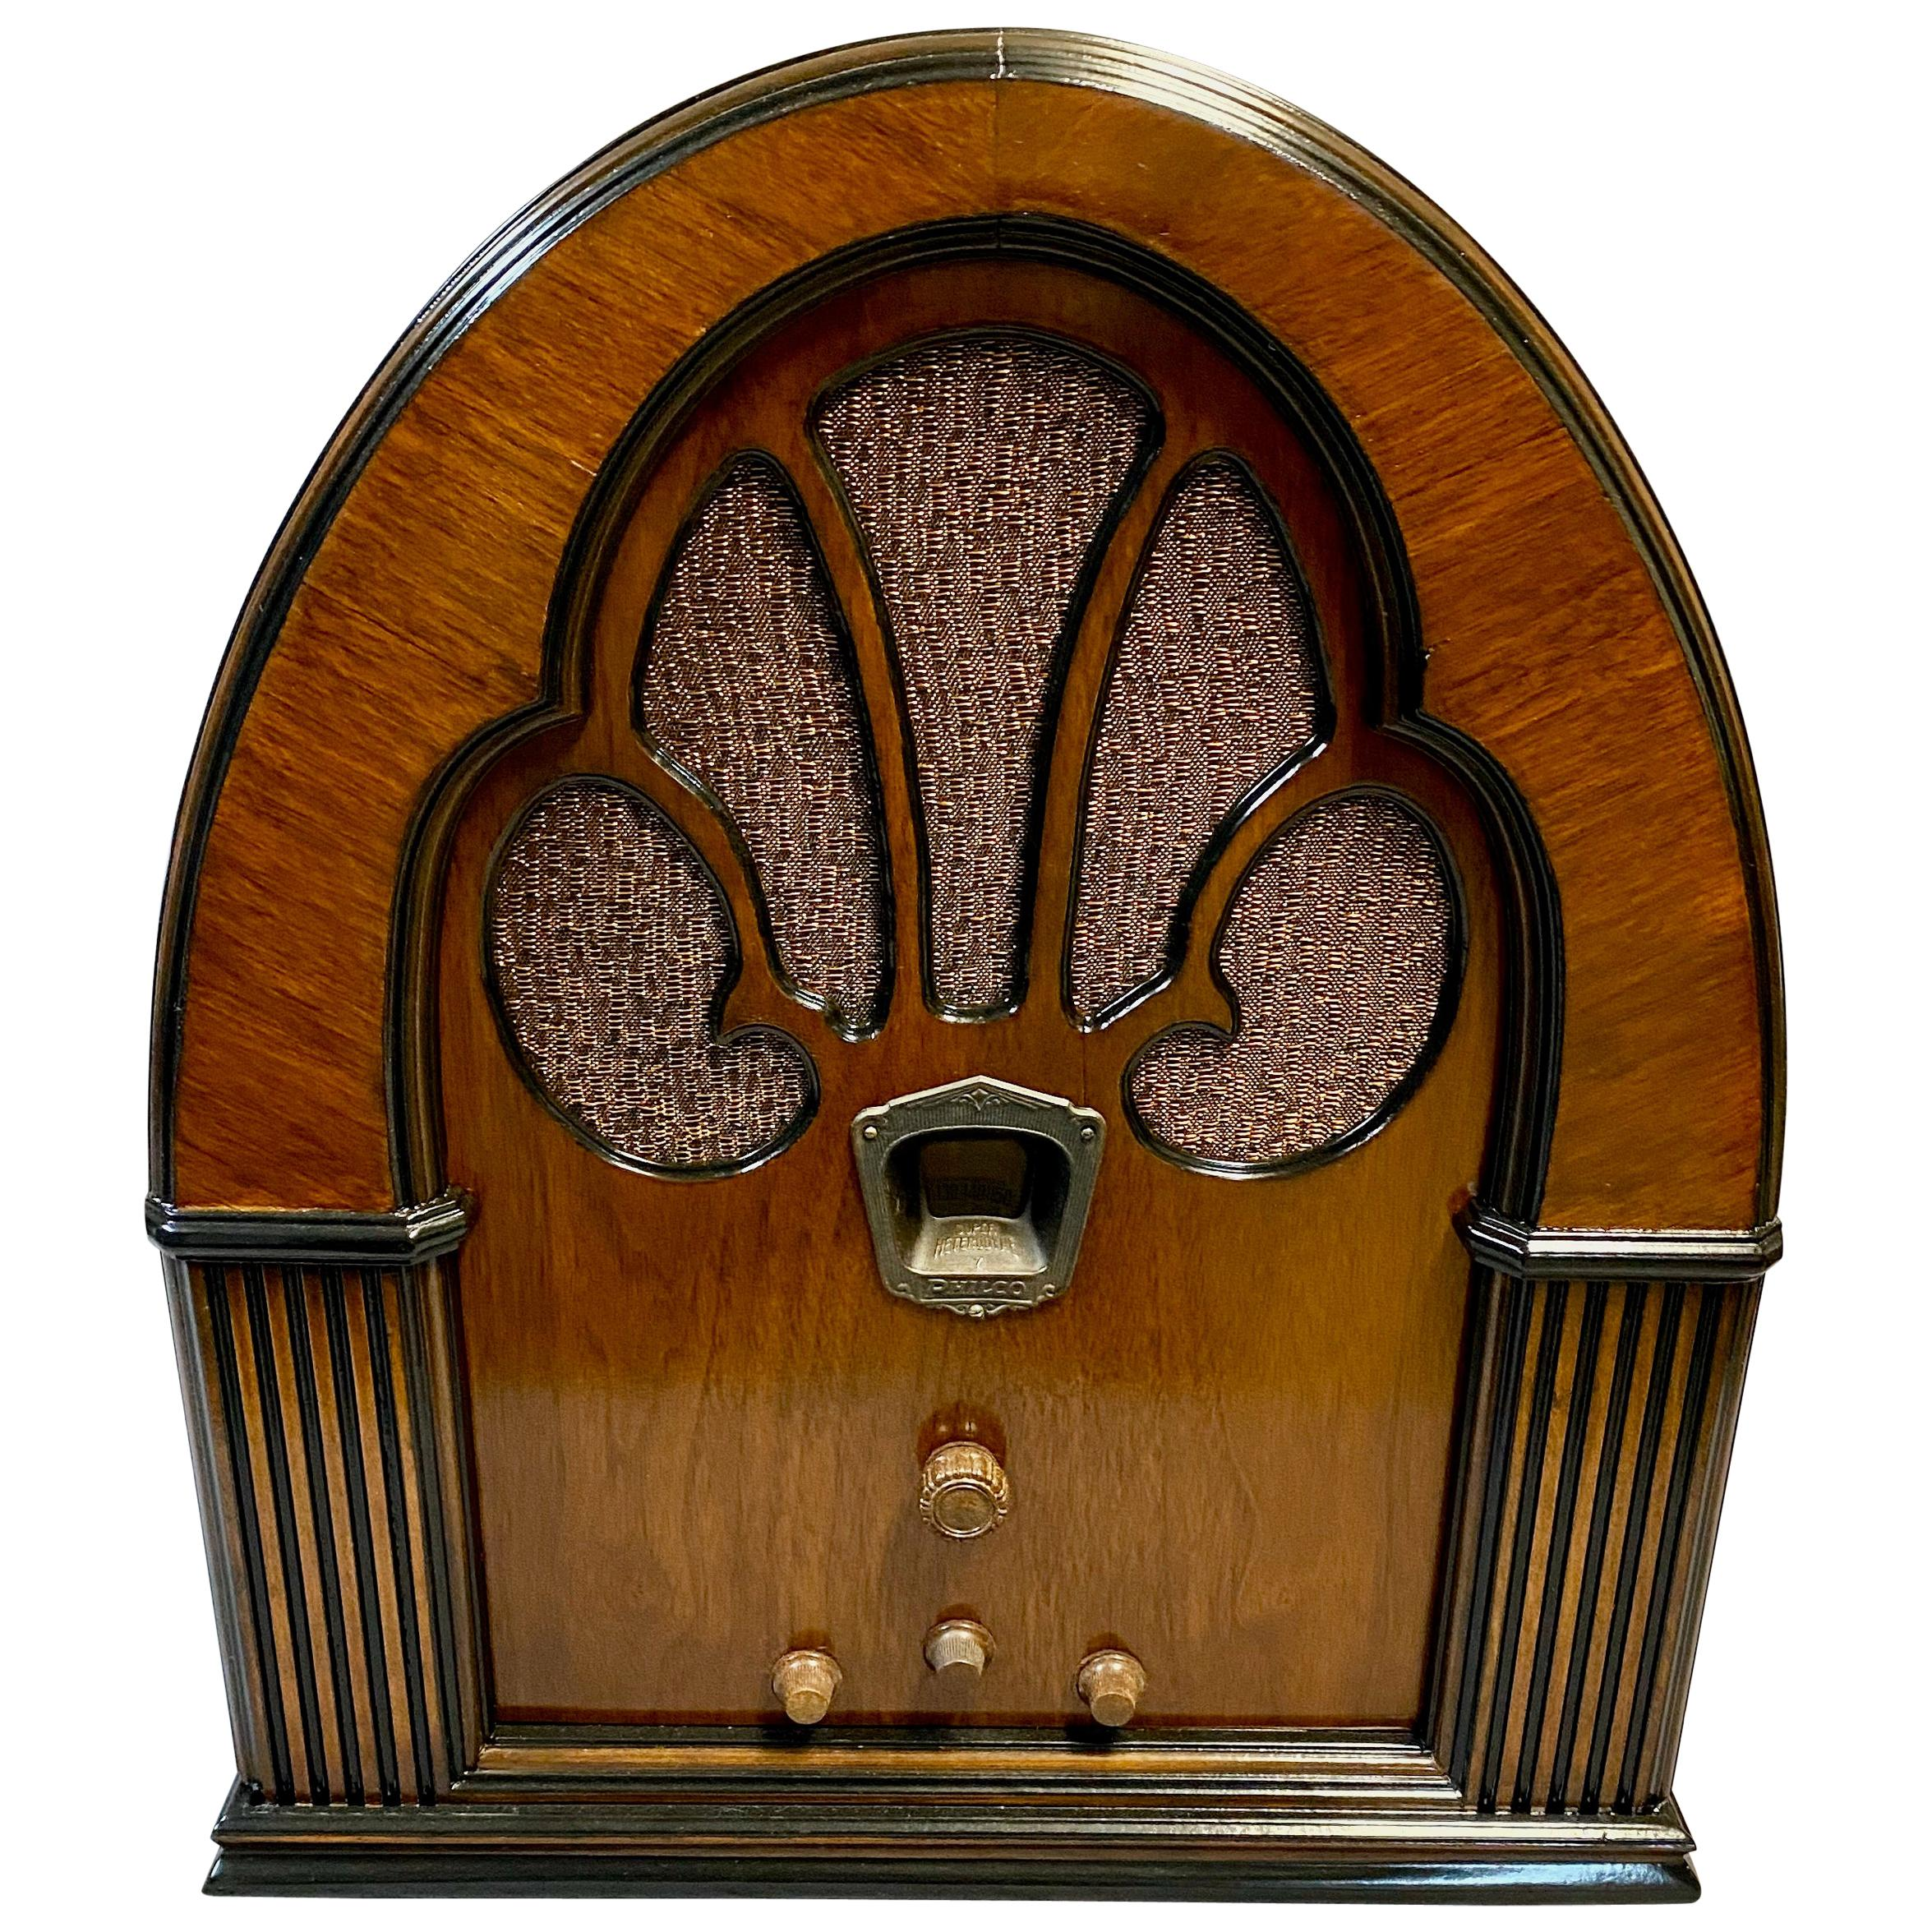 Philco Restored Tube Radio Model 70 Cathedral '1933' with MiniJack for Bluetooth